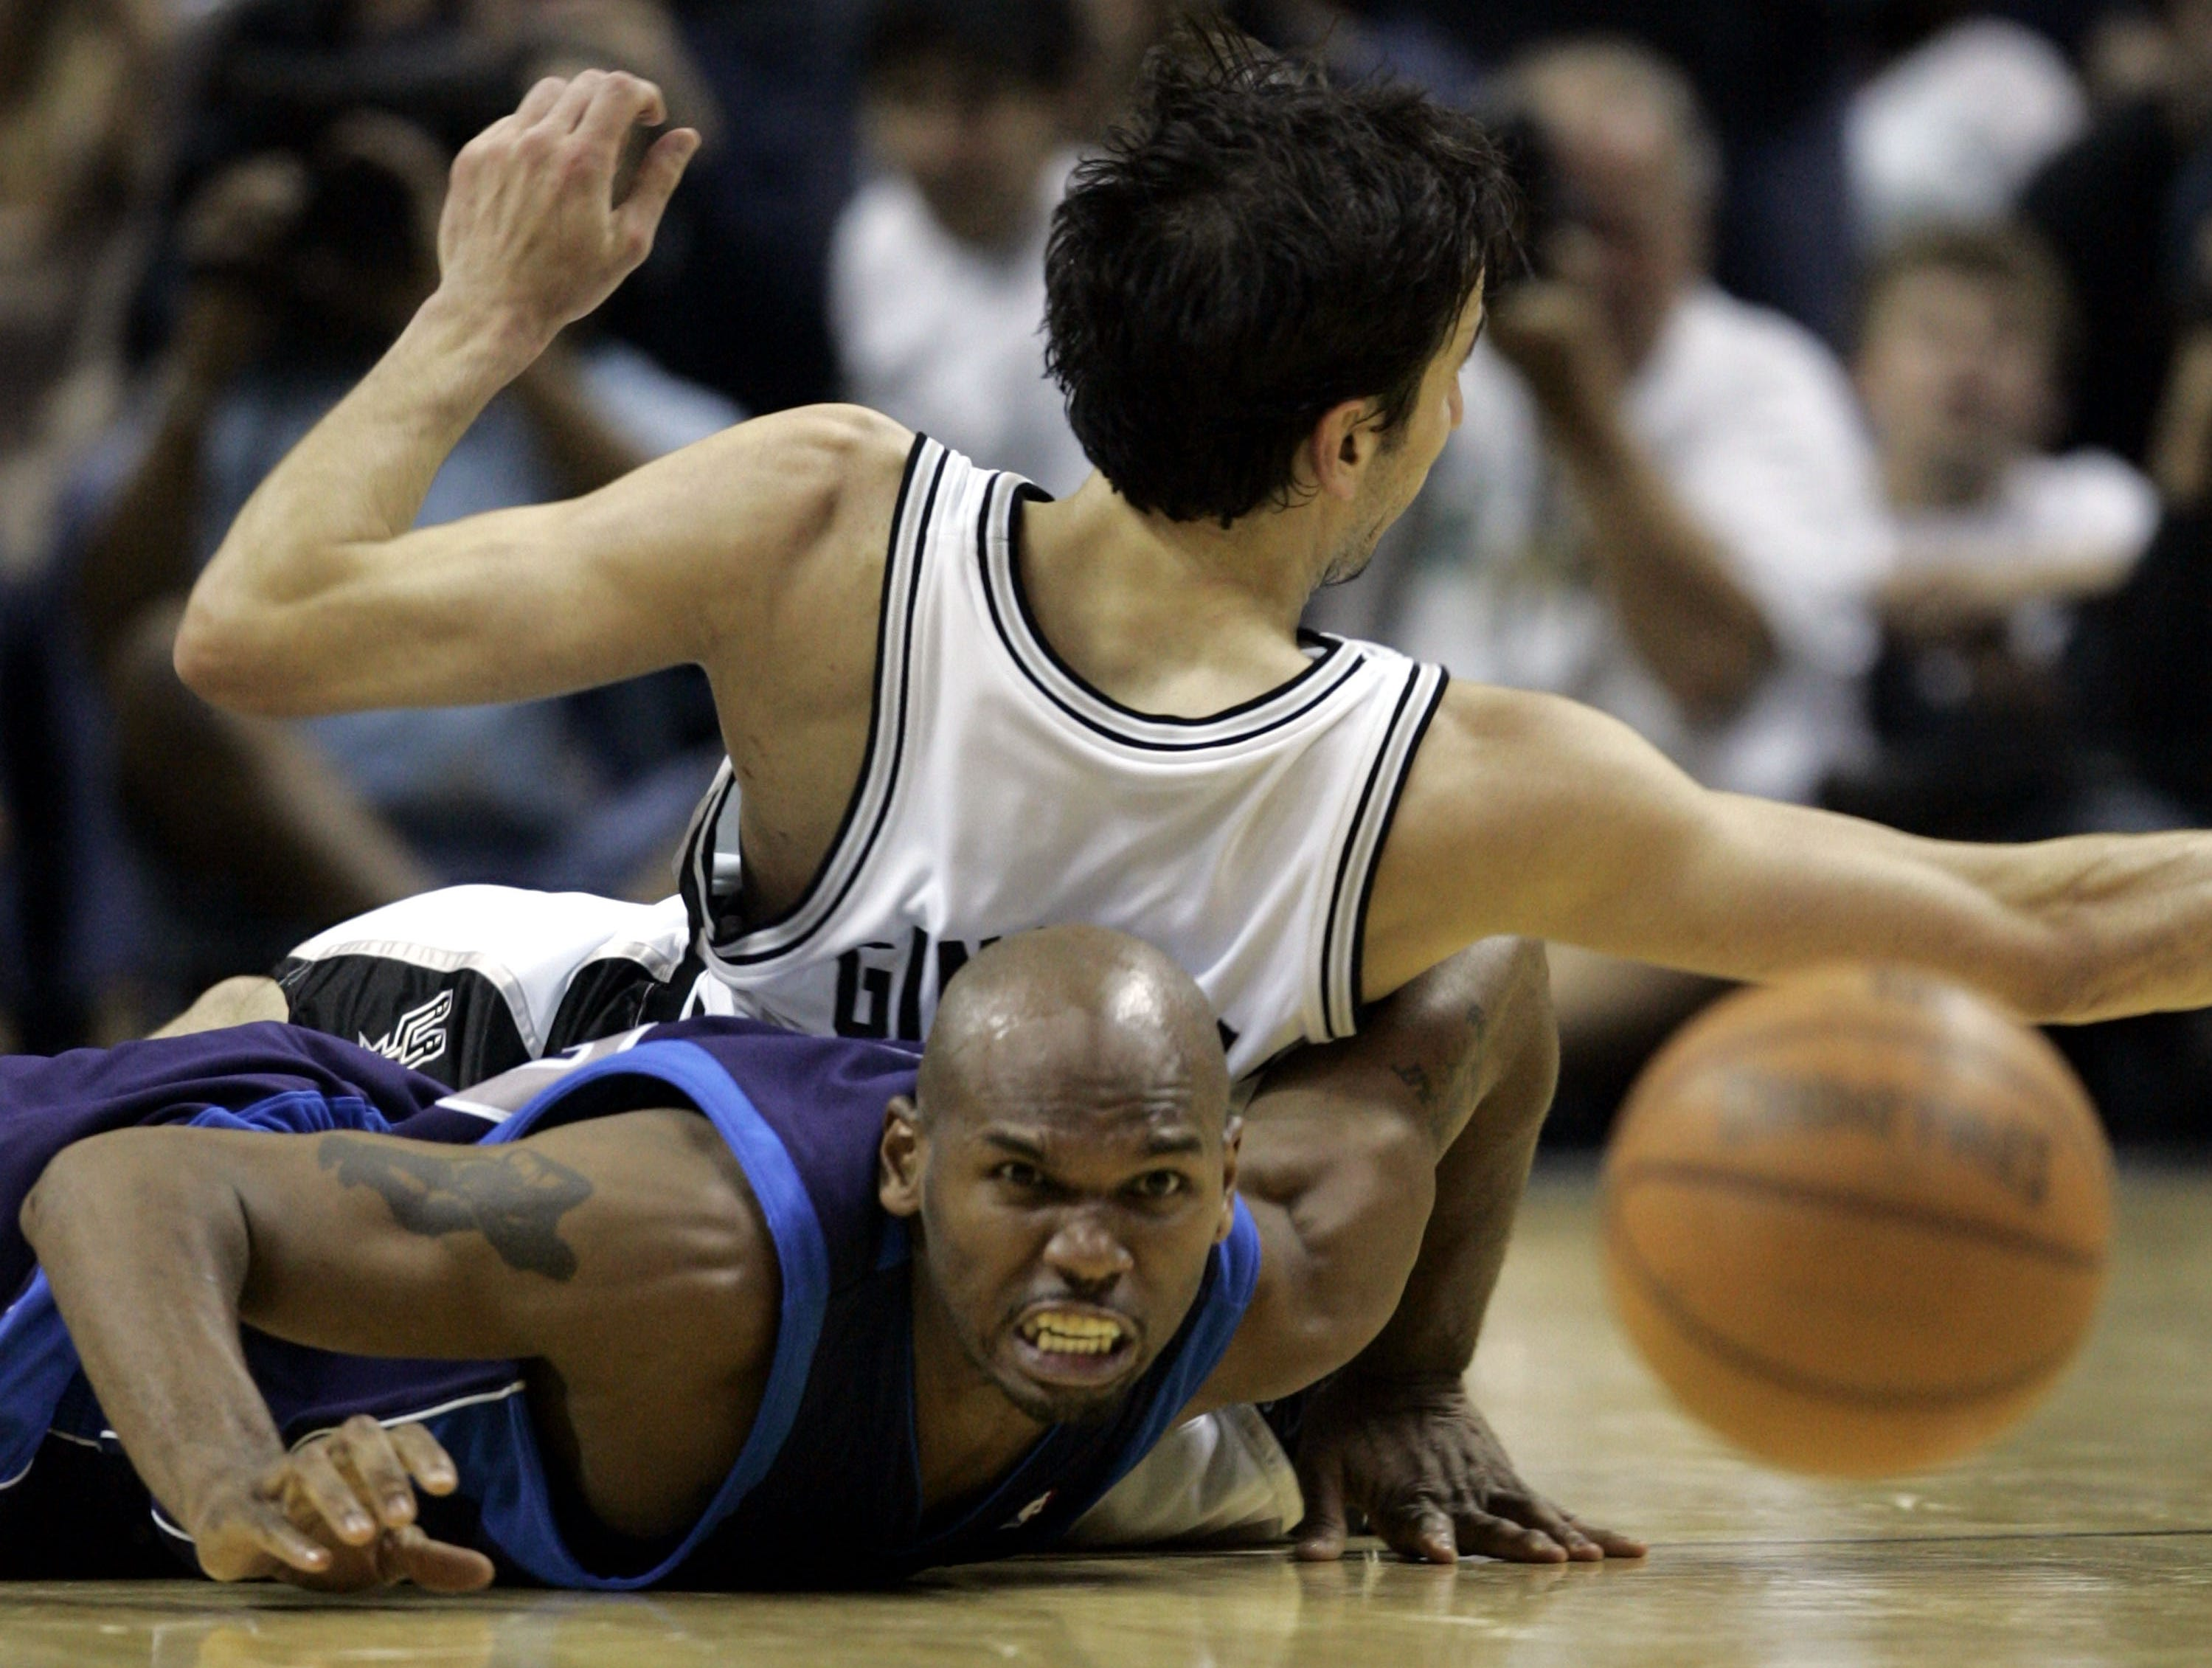 Dallas Mavericks Jerry Stackhouse watches the ball bounce away after making a scramble with it with San Antonio Spurs Manu Ginobili (20) of Argentina in the fourth quarter in Game 5 of the NBA Western Conference semifinal basketball game in San Antonio, Wednesday, May 17, 2006.